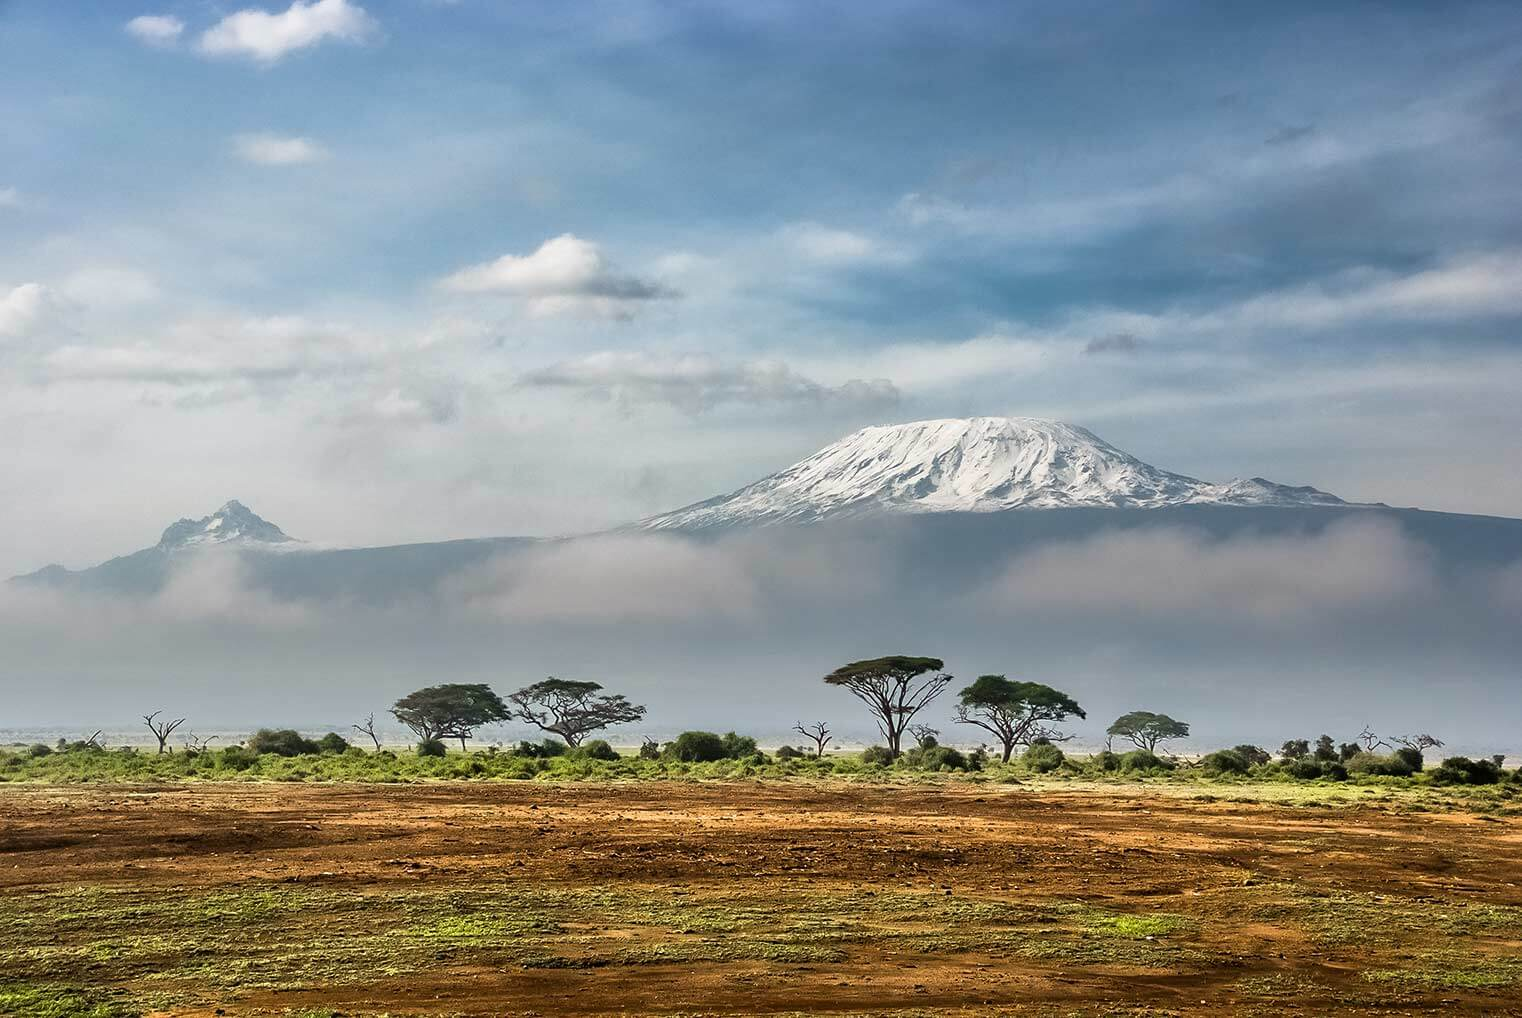 The Fascinating Mount Kilimanjaro: A New Docuseries In The Works